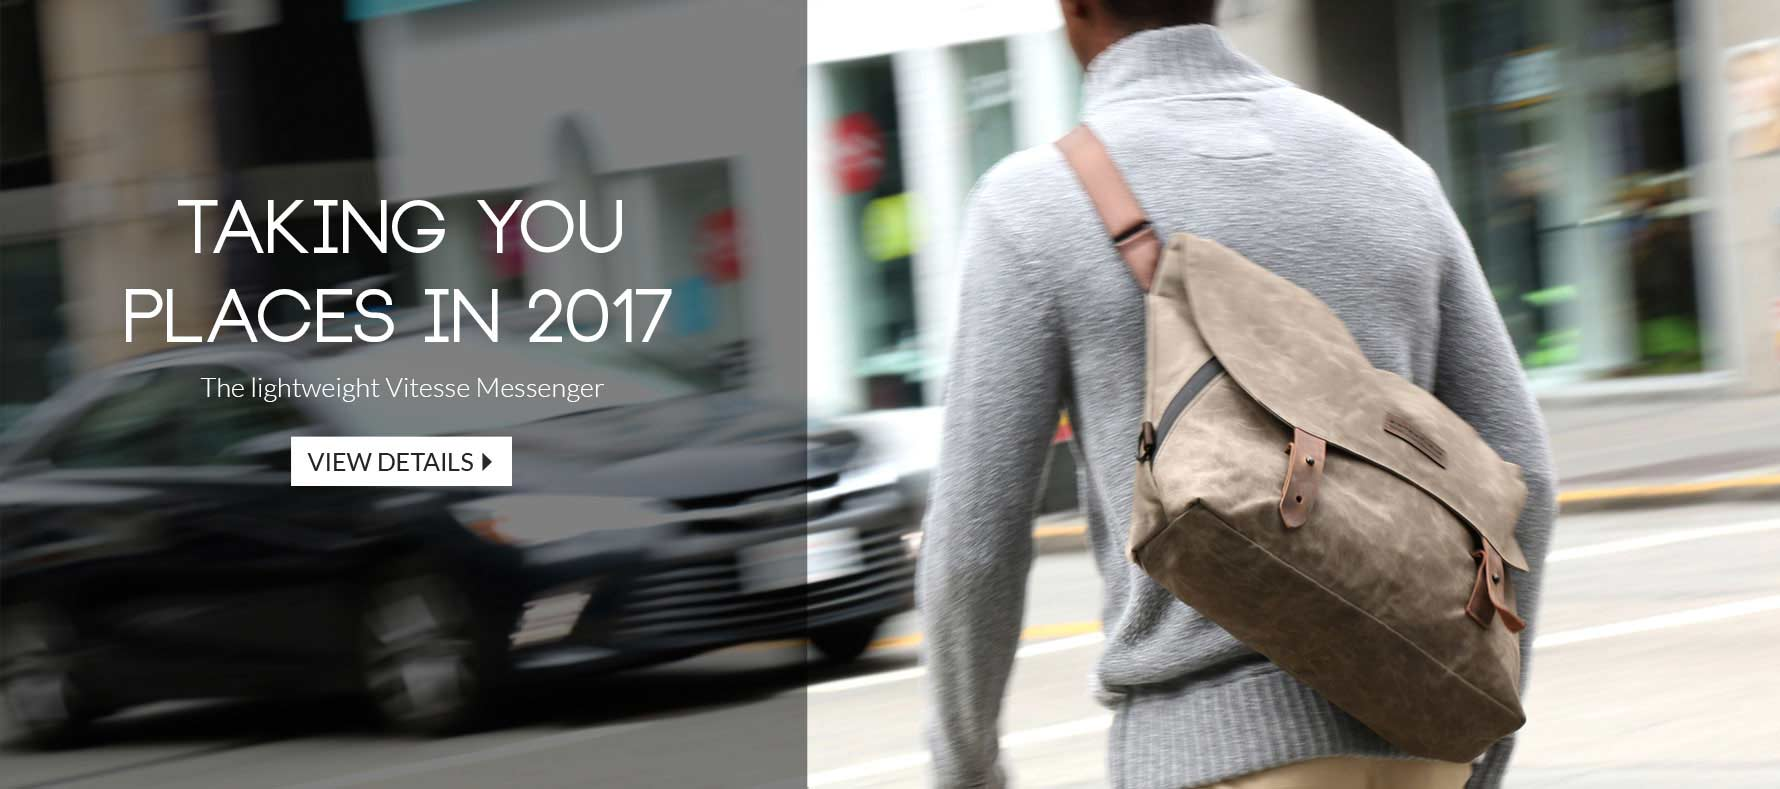 The lightweight Vitesse Messenger - Taking you places in 2017